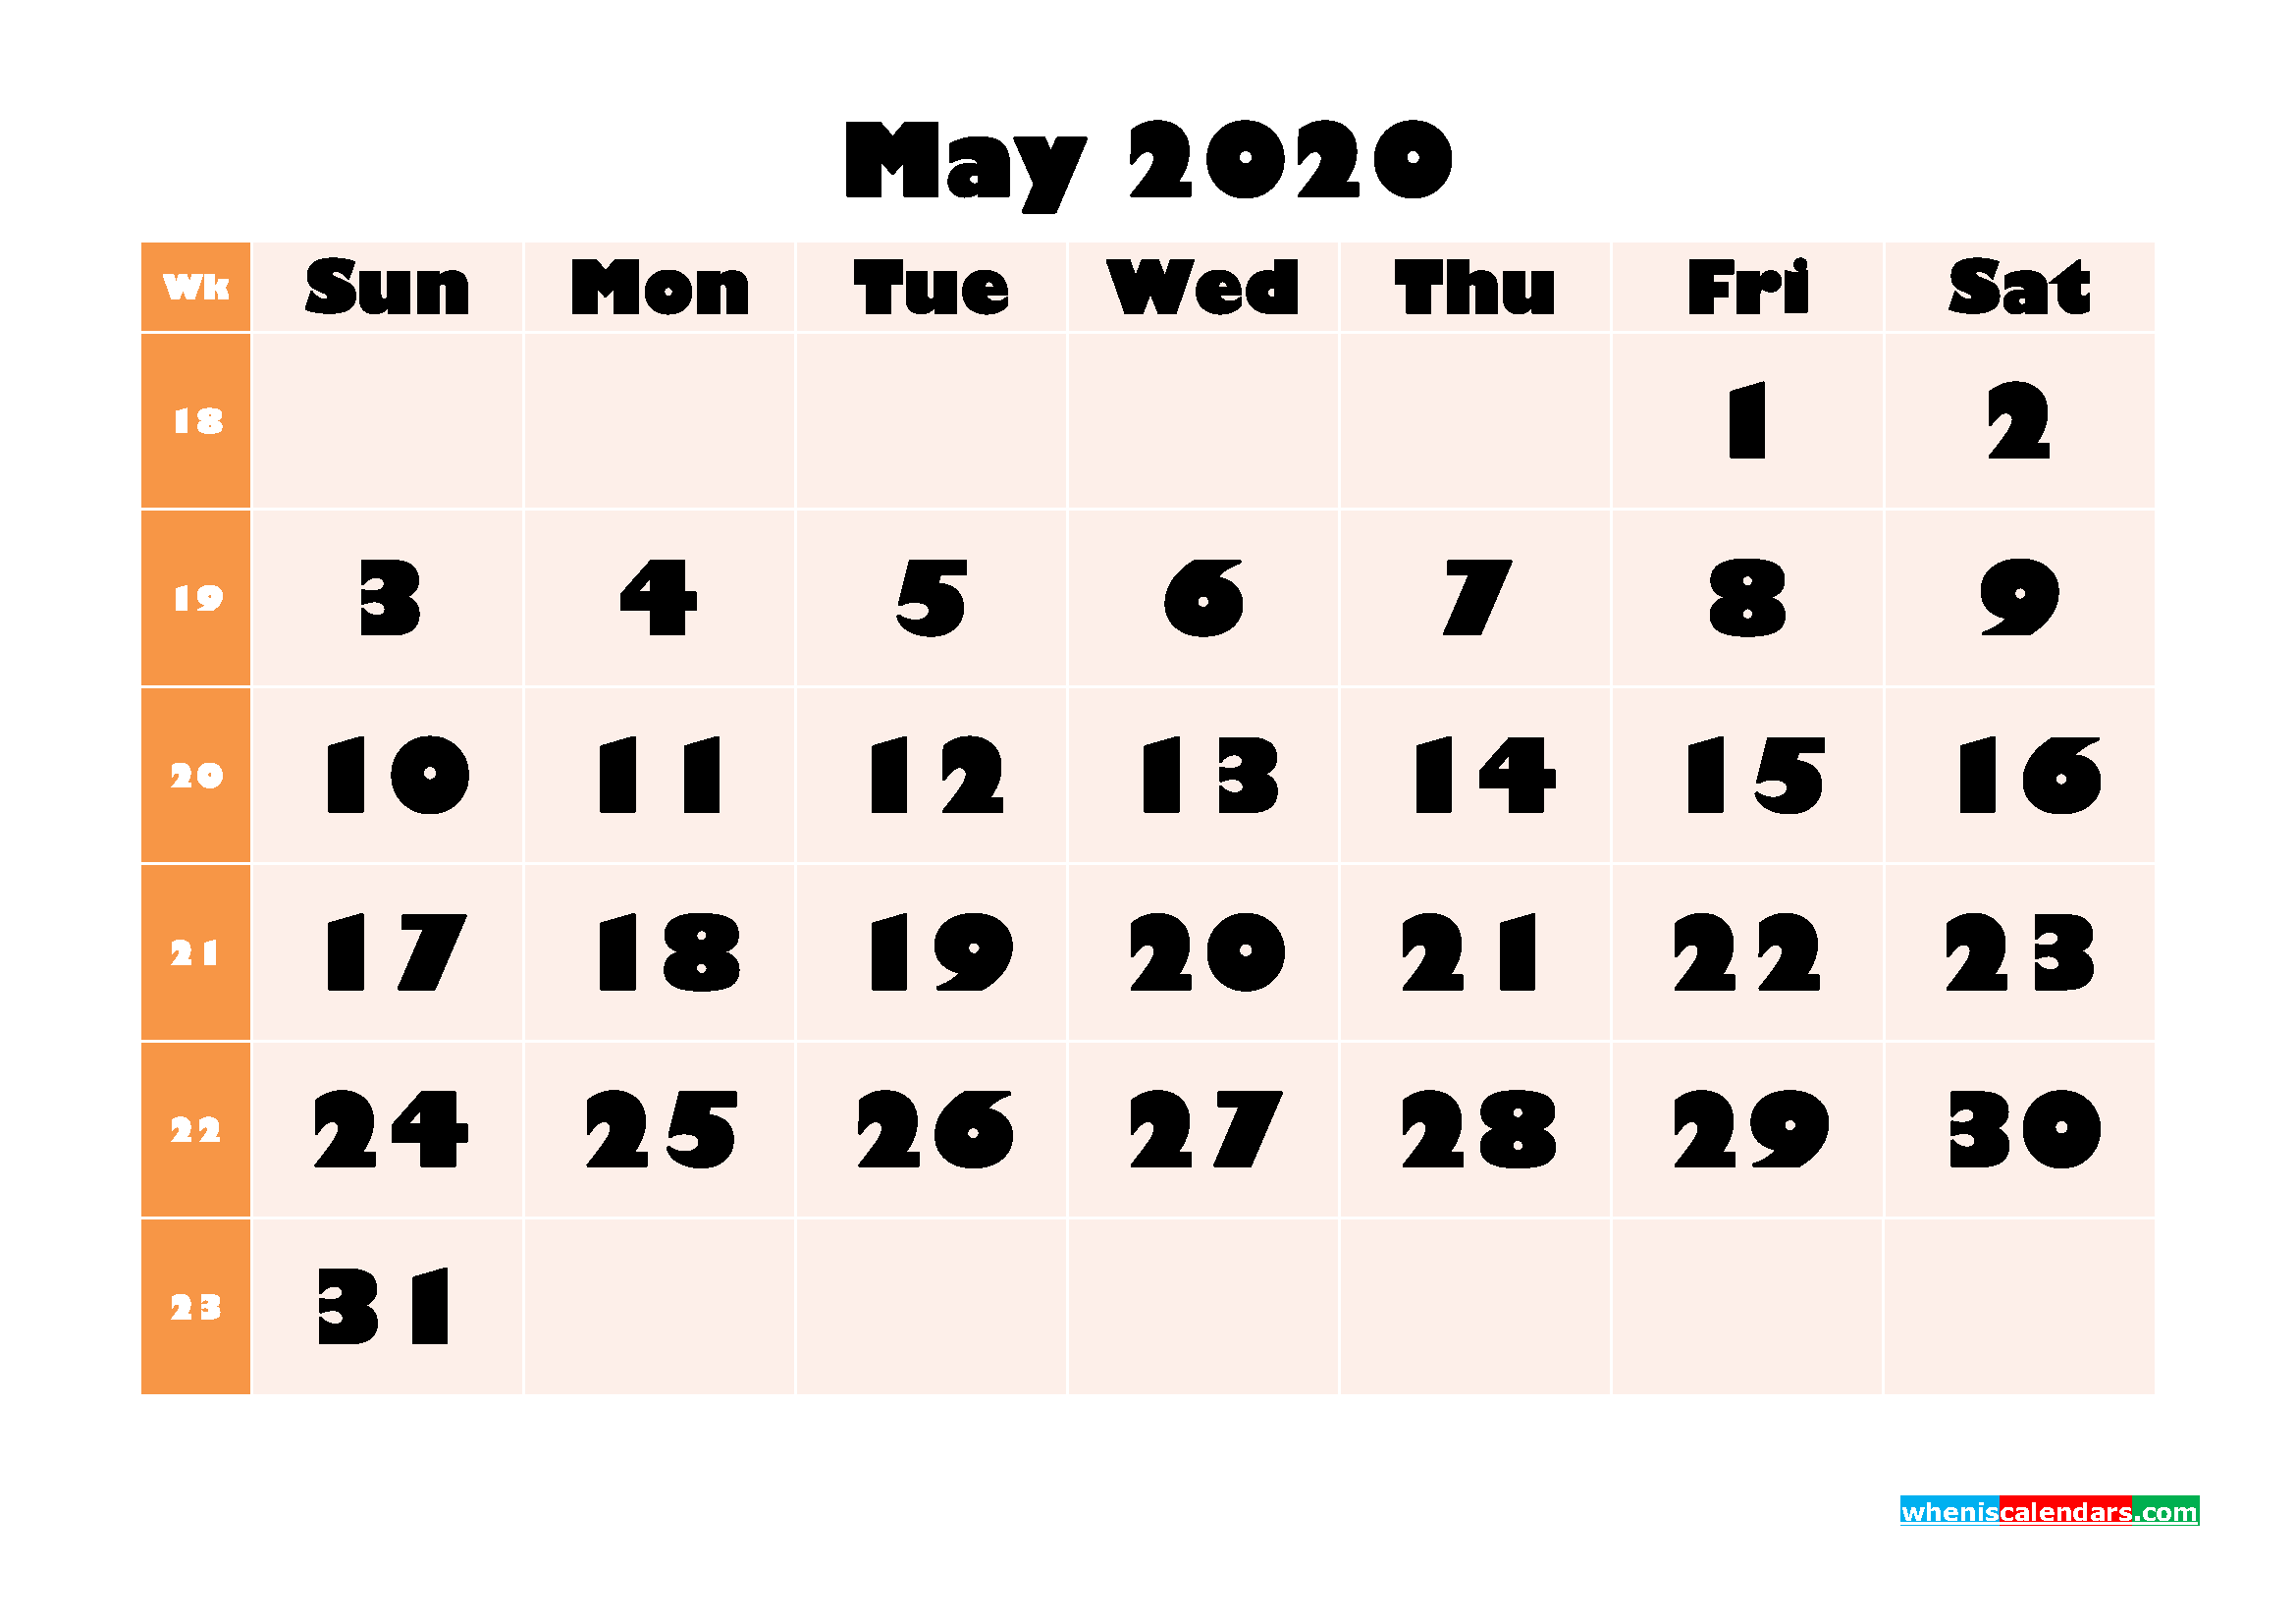 Monthly Printable Calendar 2020 May with Week Numbers